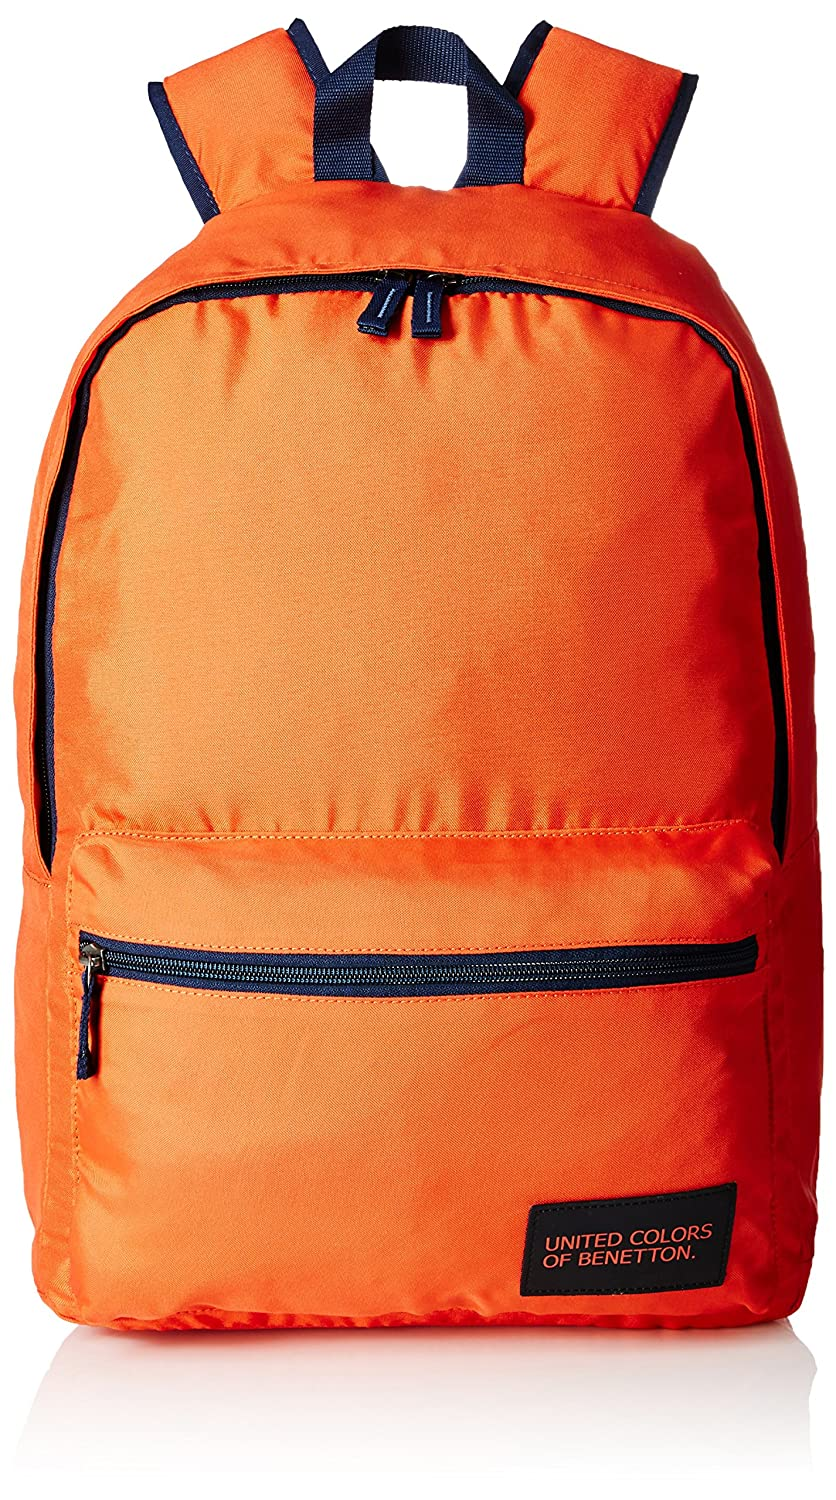 LOOT - United Colors of Benetton Polyester Travel Bag @ 80% off